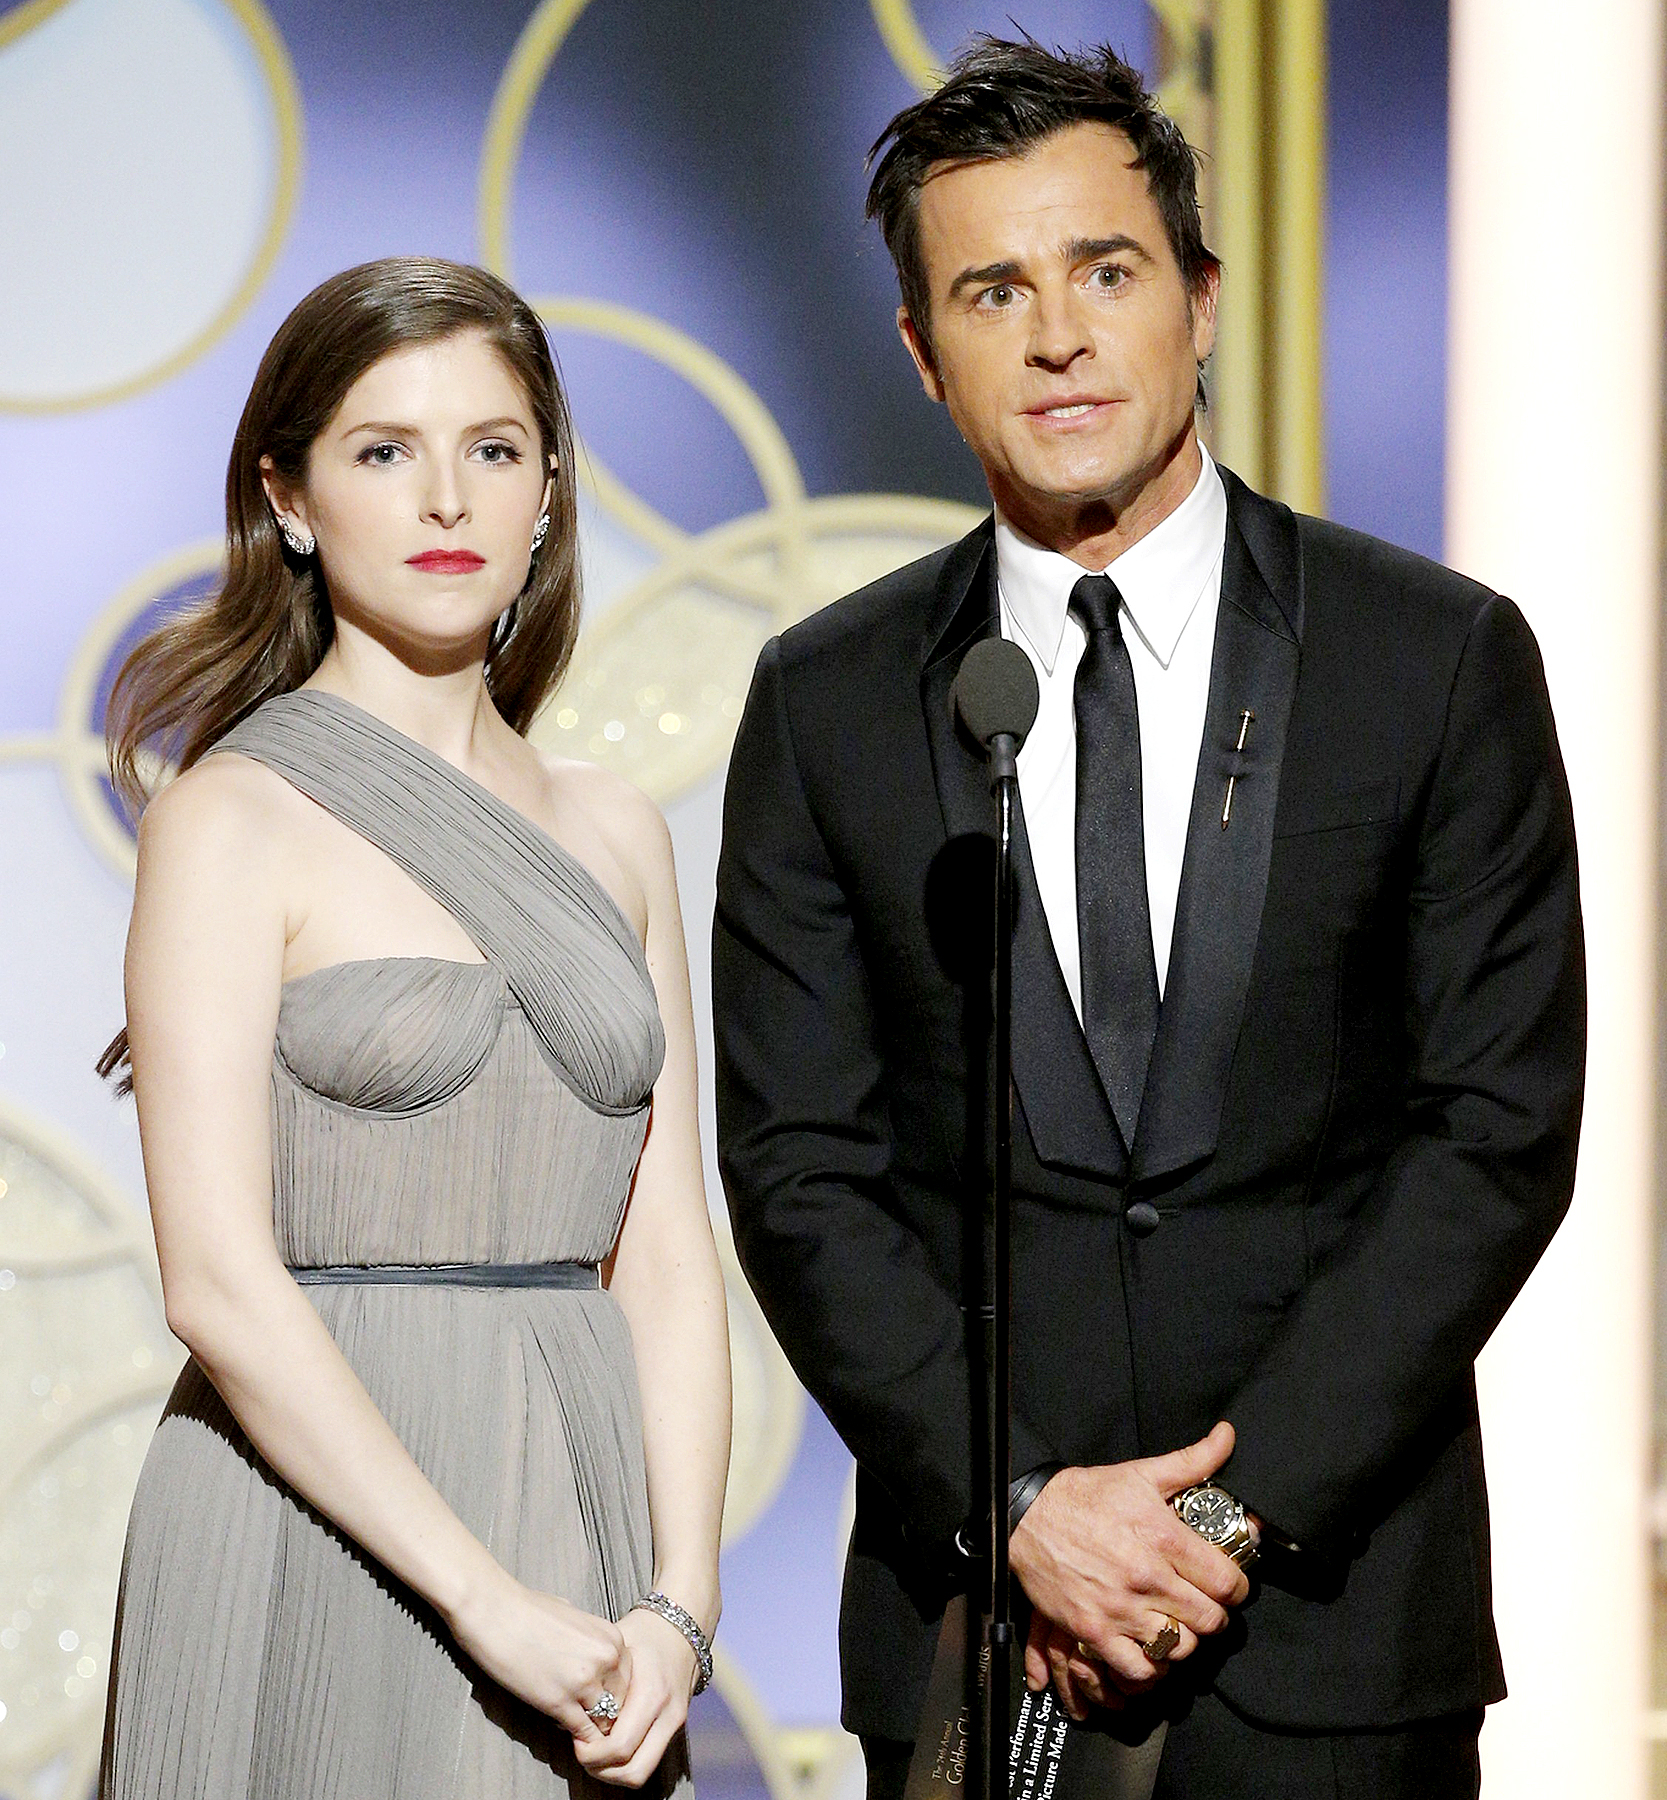 Anna Kendrick and Justin Theroux onstage during the 74th Annual Golden Globe Awards at The Beverly Hilton Hotel on January 8, 2017 in Beverly Hills, California.